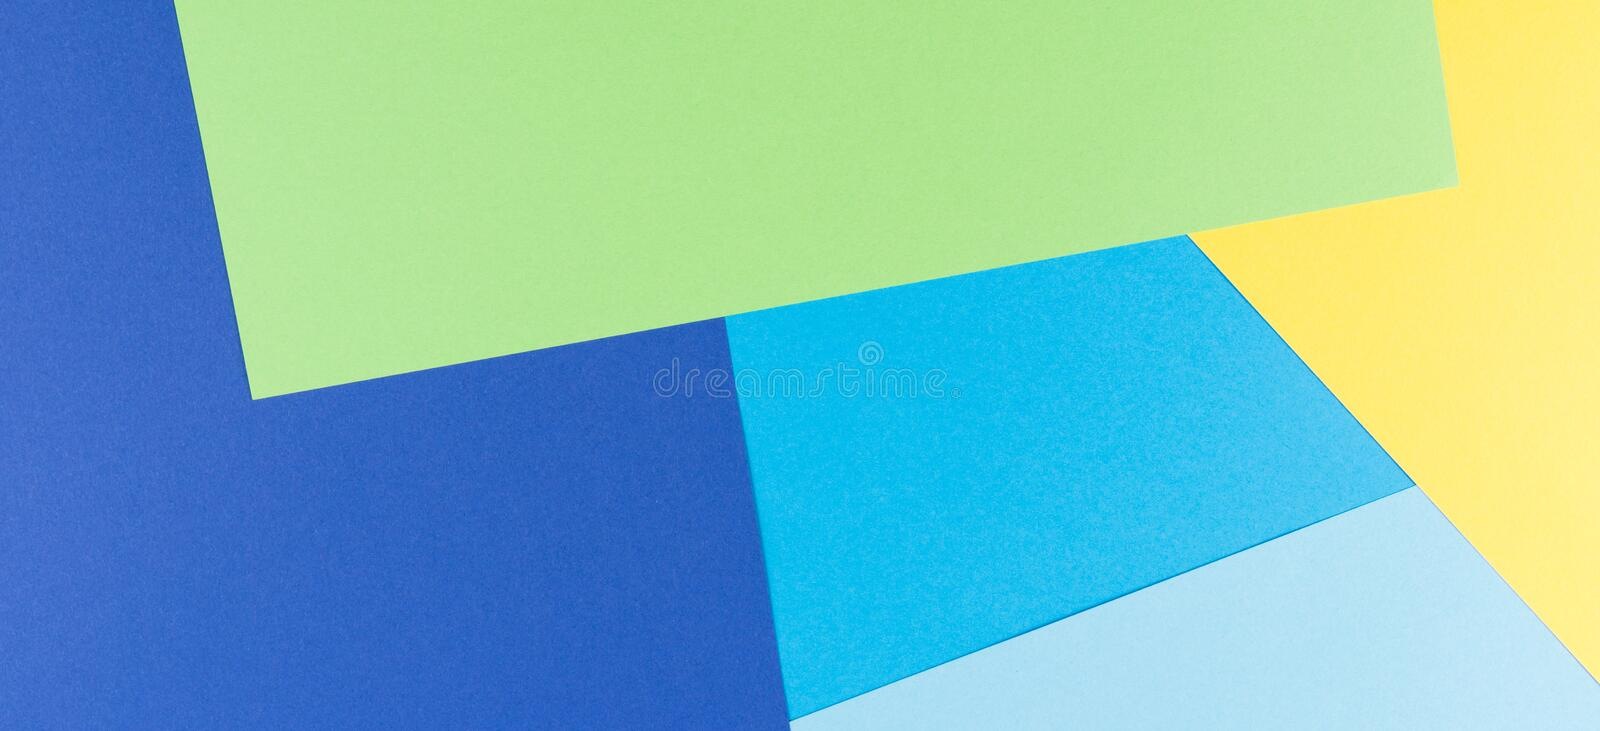 Abstract colored paper banner background with yellow, green and blue tones.  stock photo